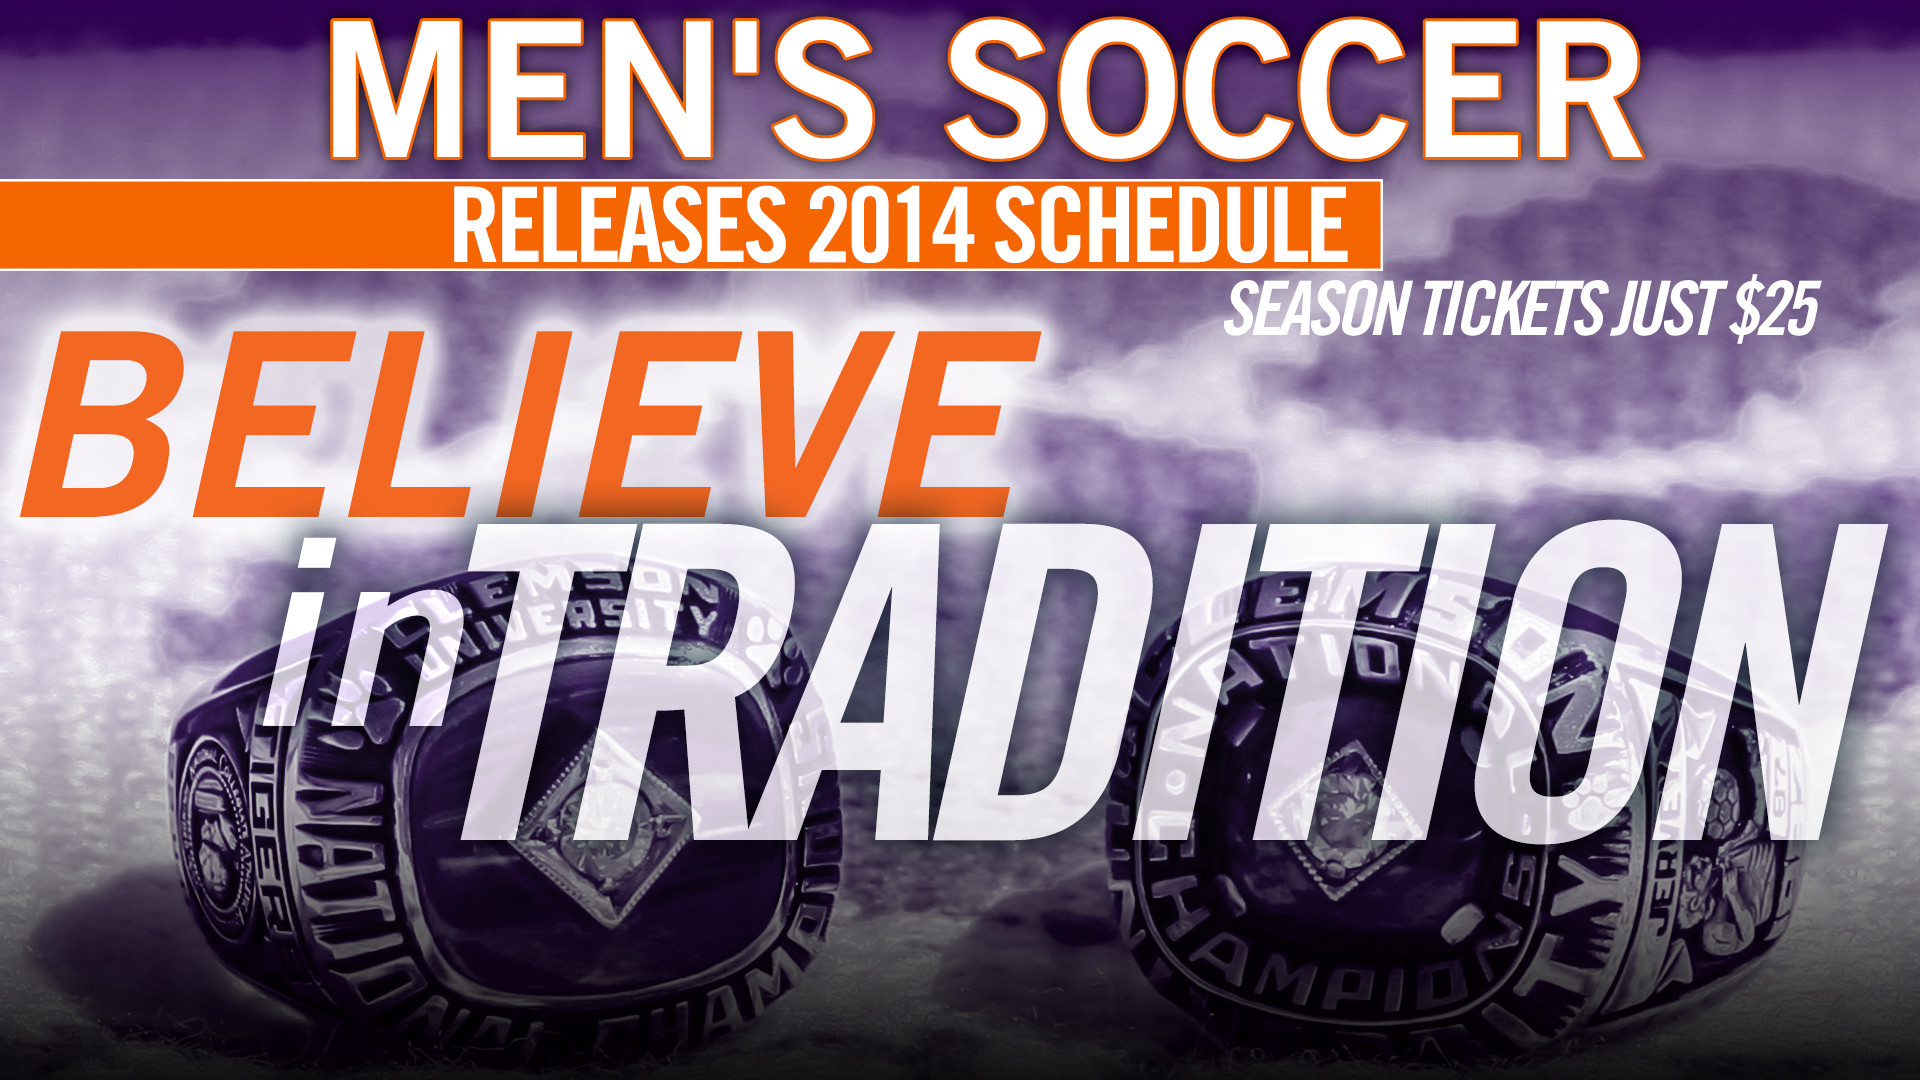 Clemson Men?s Soccer 2014 Schedule Released